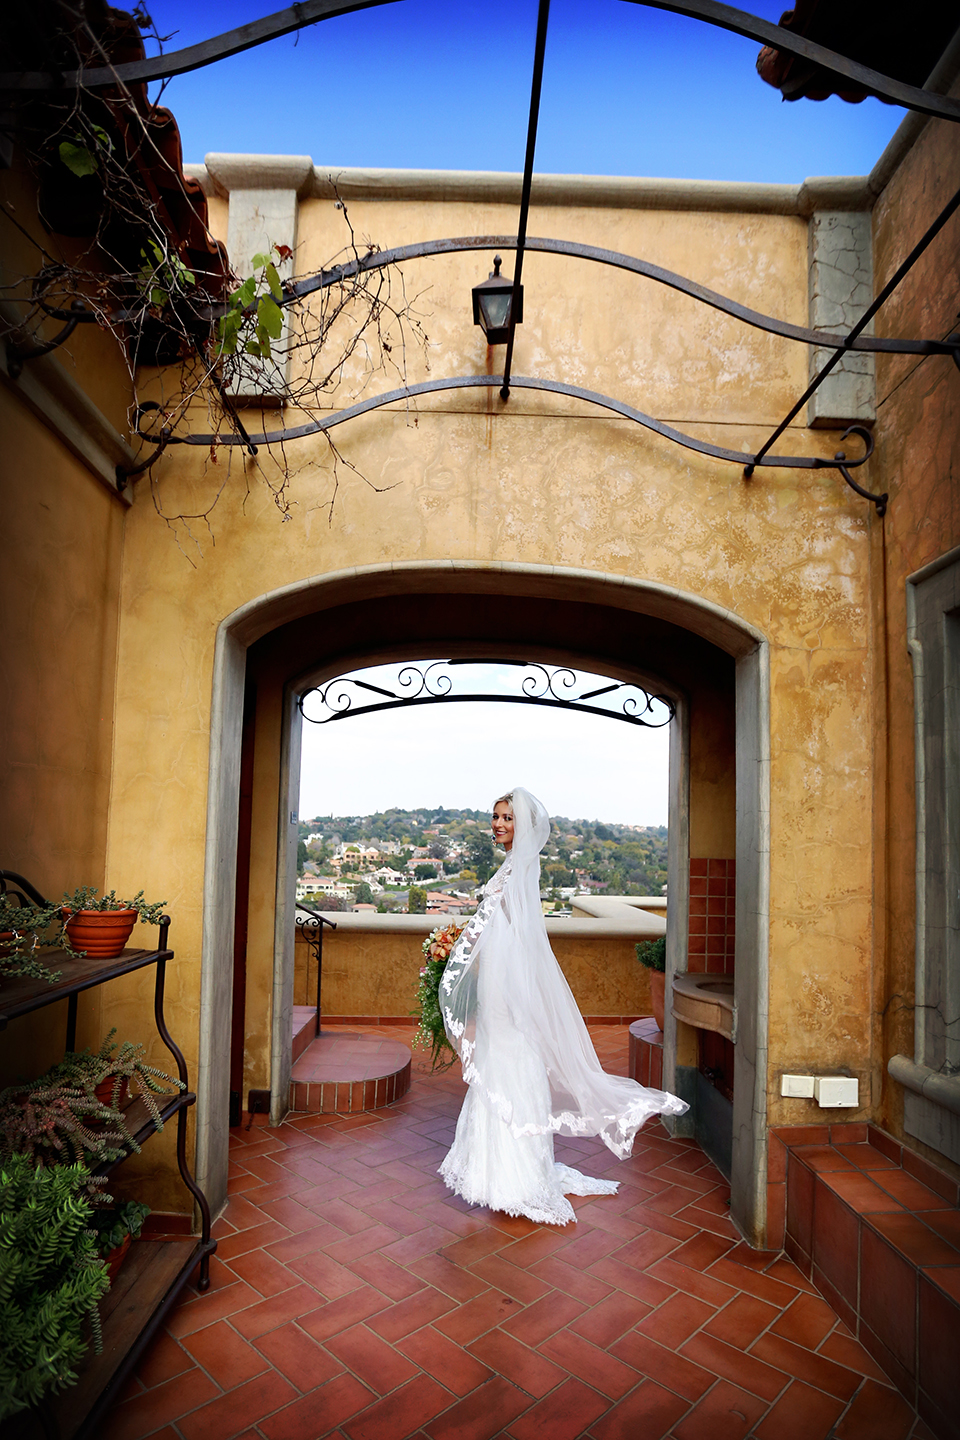 italy-wedding-photographers-destination-wedding-photographers-estilo-photography-best-wedding-photographers-amalfi-coast-best-wedding-photographers-in-the-world-40zg.jpg